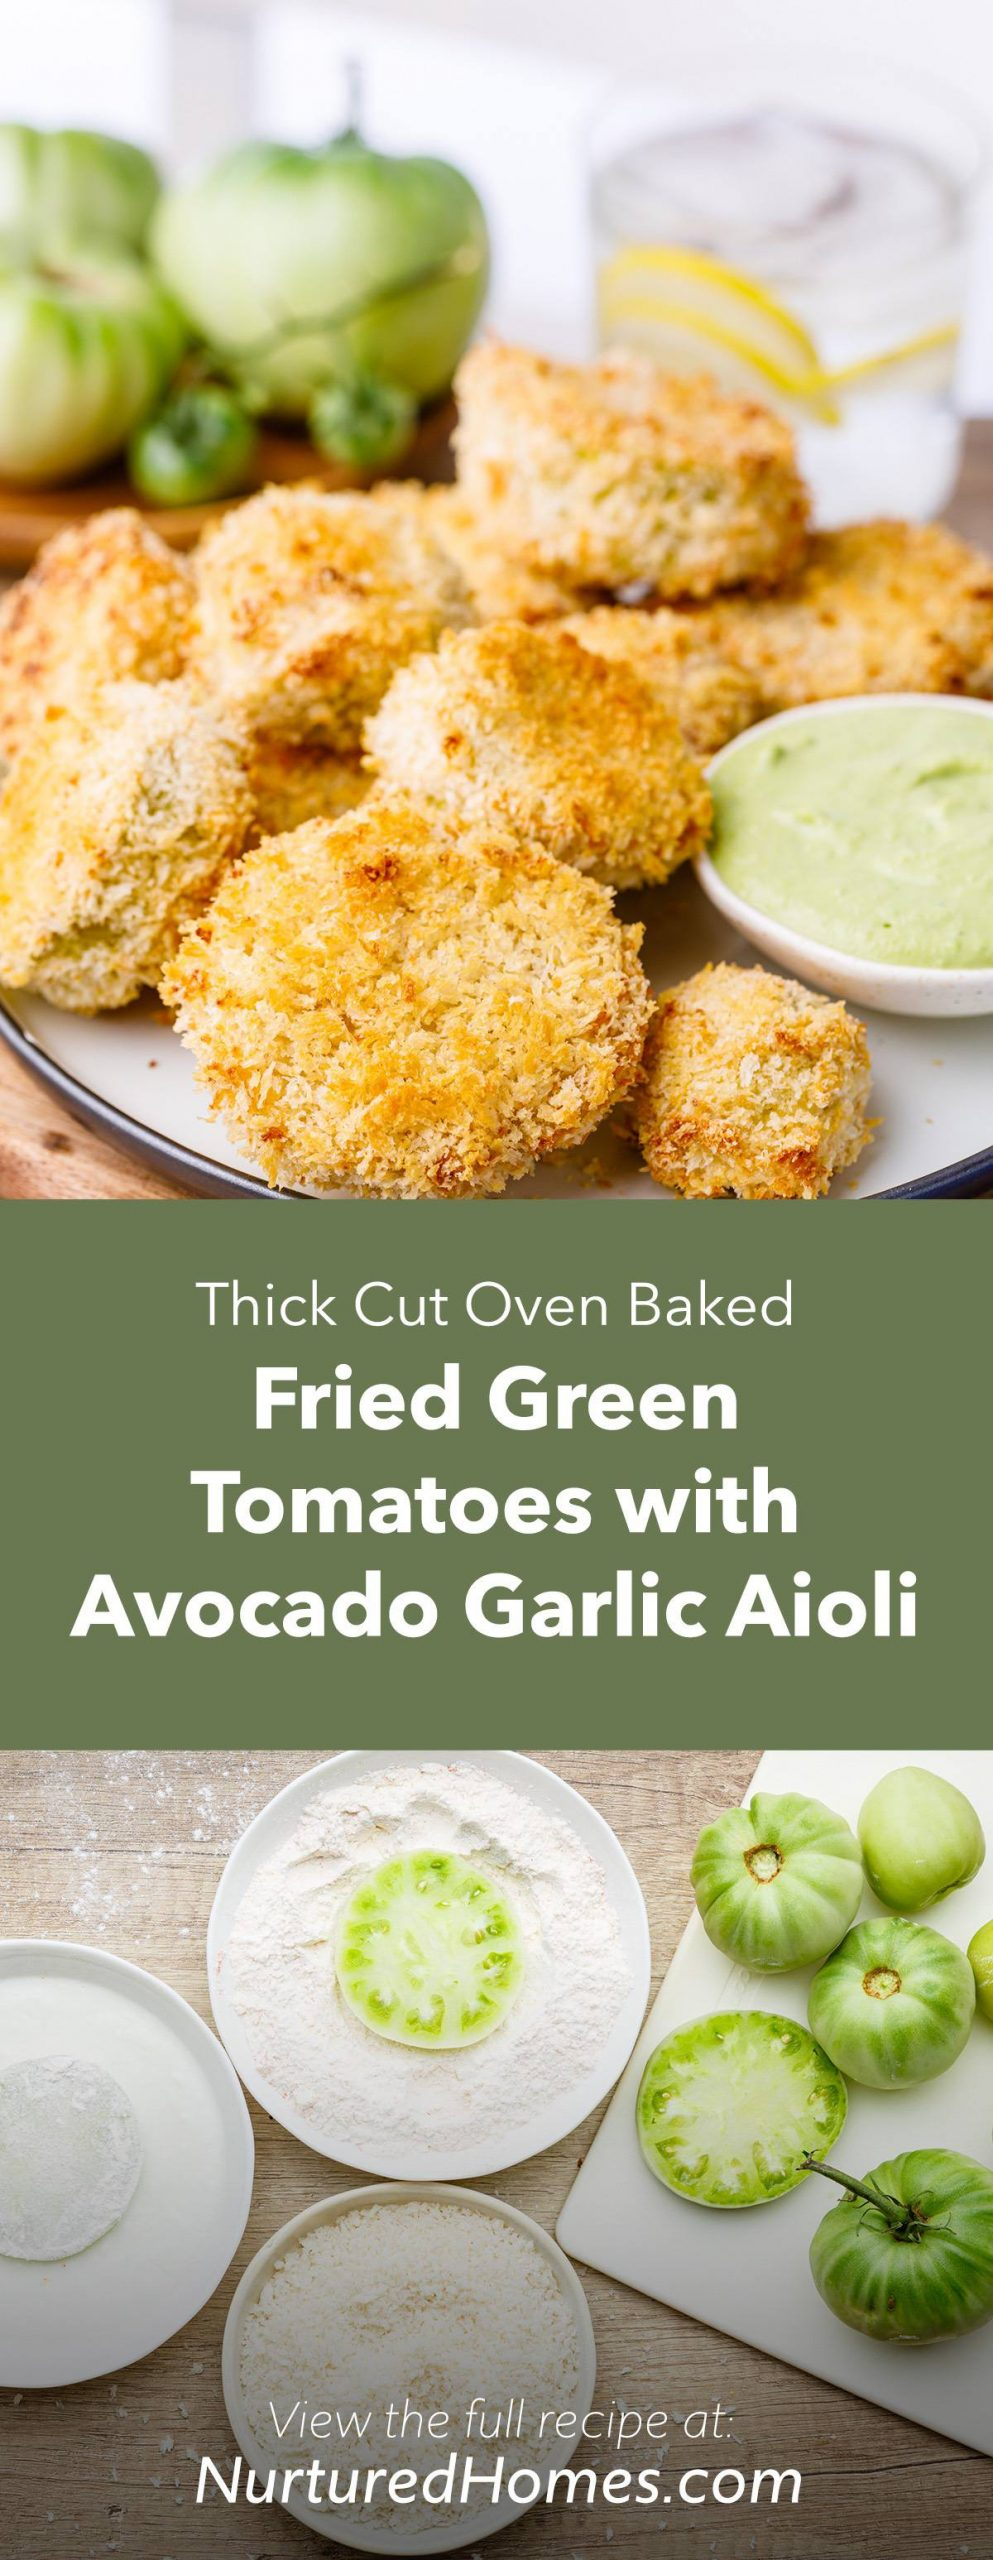 Thick Cut Oven Baked Fried Green Tomatoes with Avocado Garlic Aioli